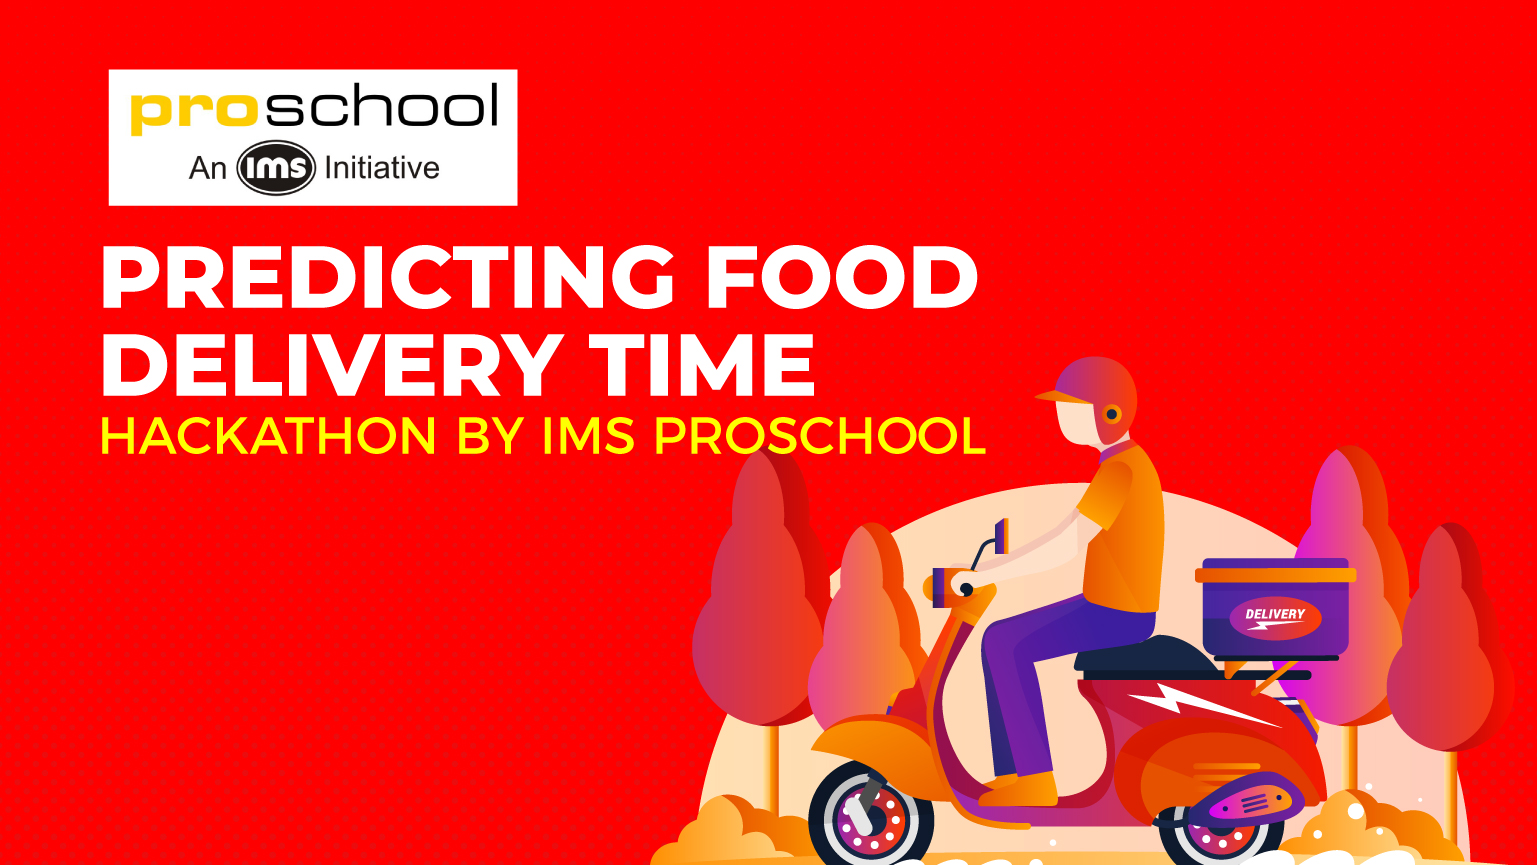 DATA SCIENCE HACKATHON: WIN PRIZES BY USING MACHINE LEARNING TO PREDICT FOOD DELIVERY TIME